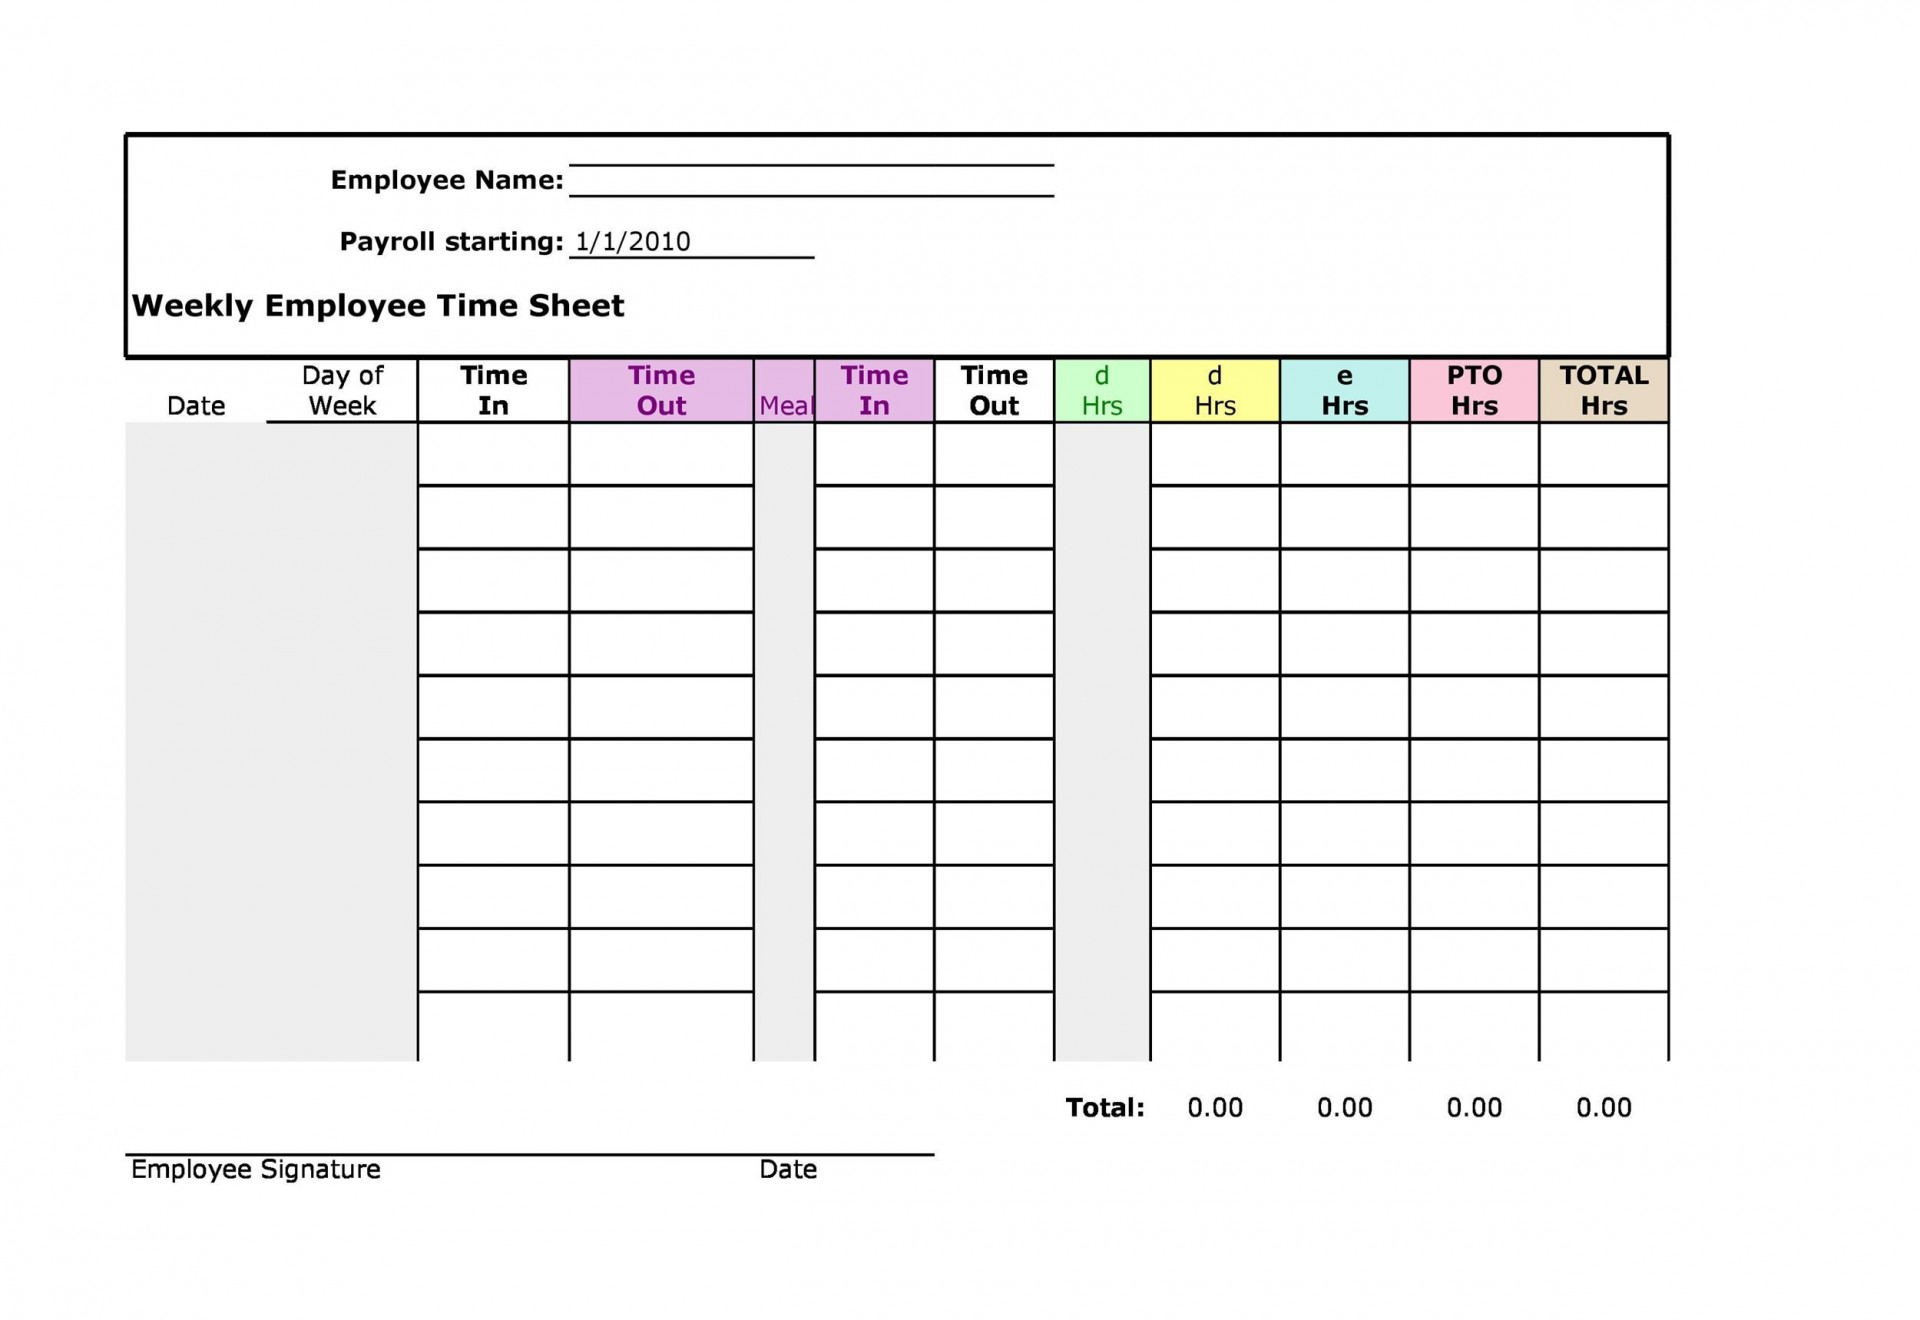 008 Singular Employee Monthly Time Card Template High Def 1920